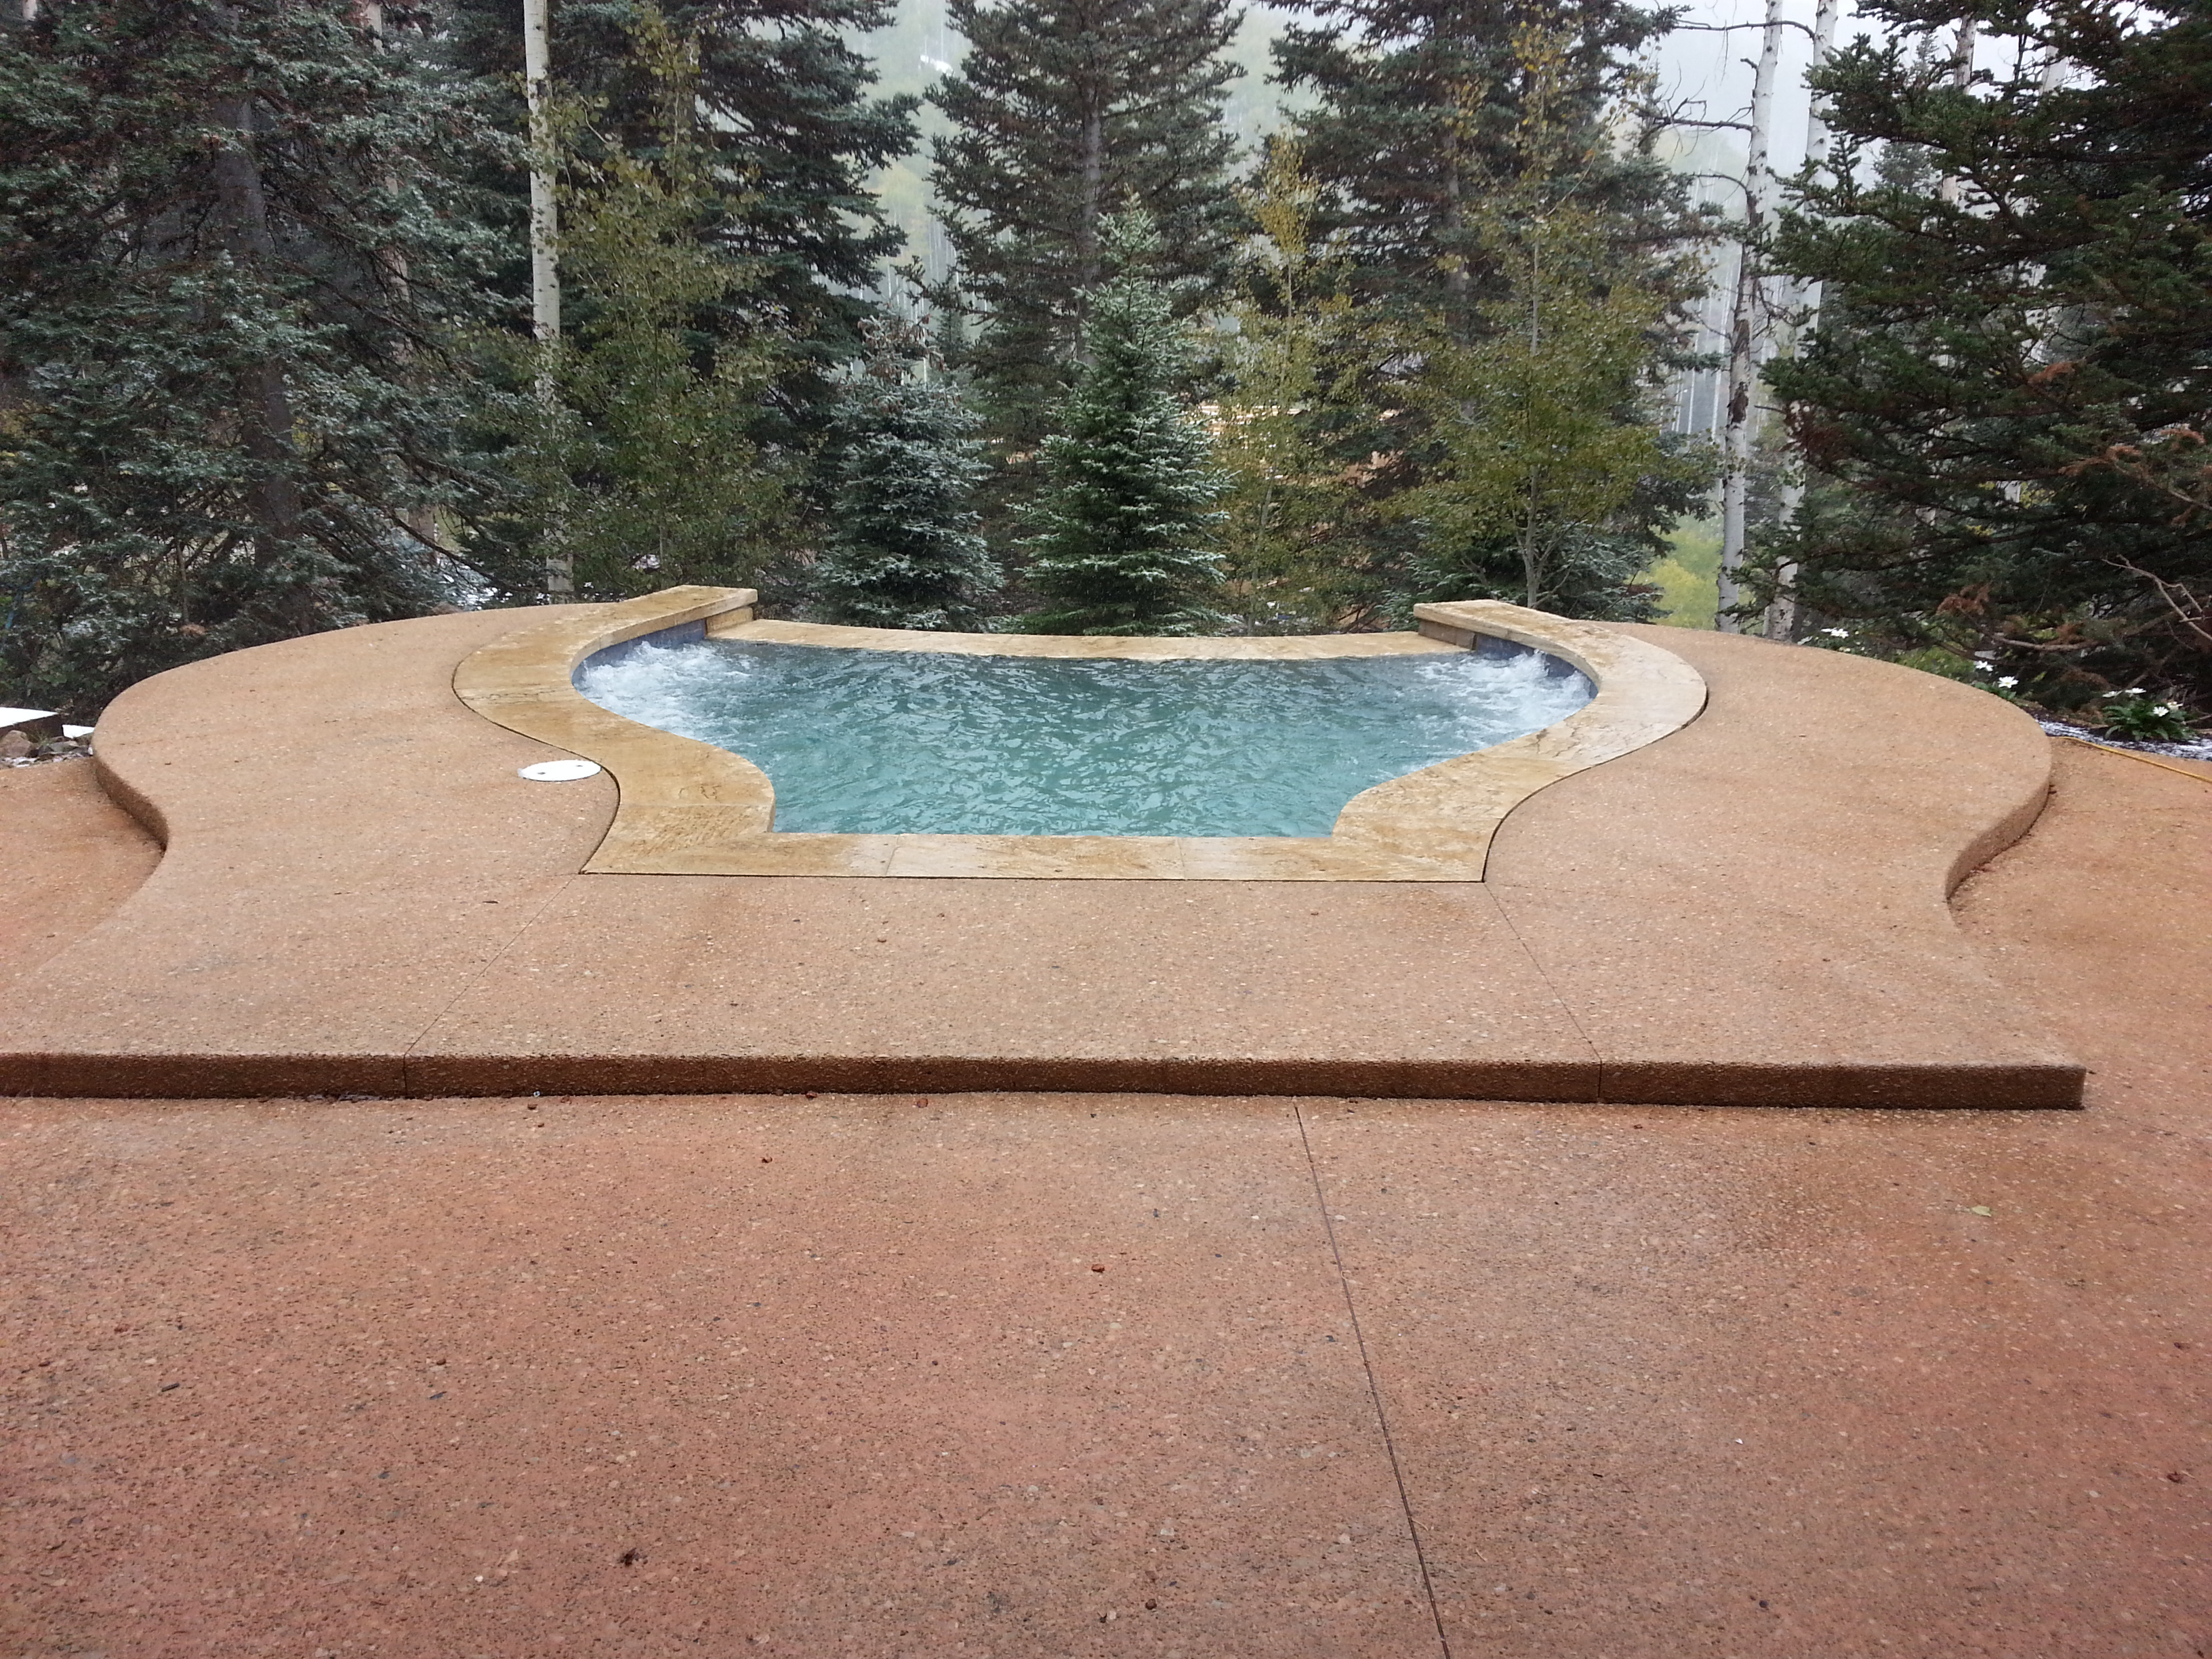 R&M Pools and Spas A Division of Blue Haven Pools & Spas, LLC - ad image